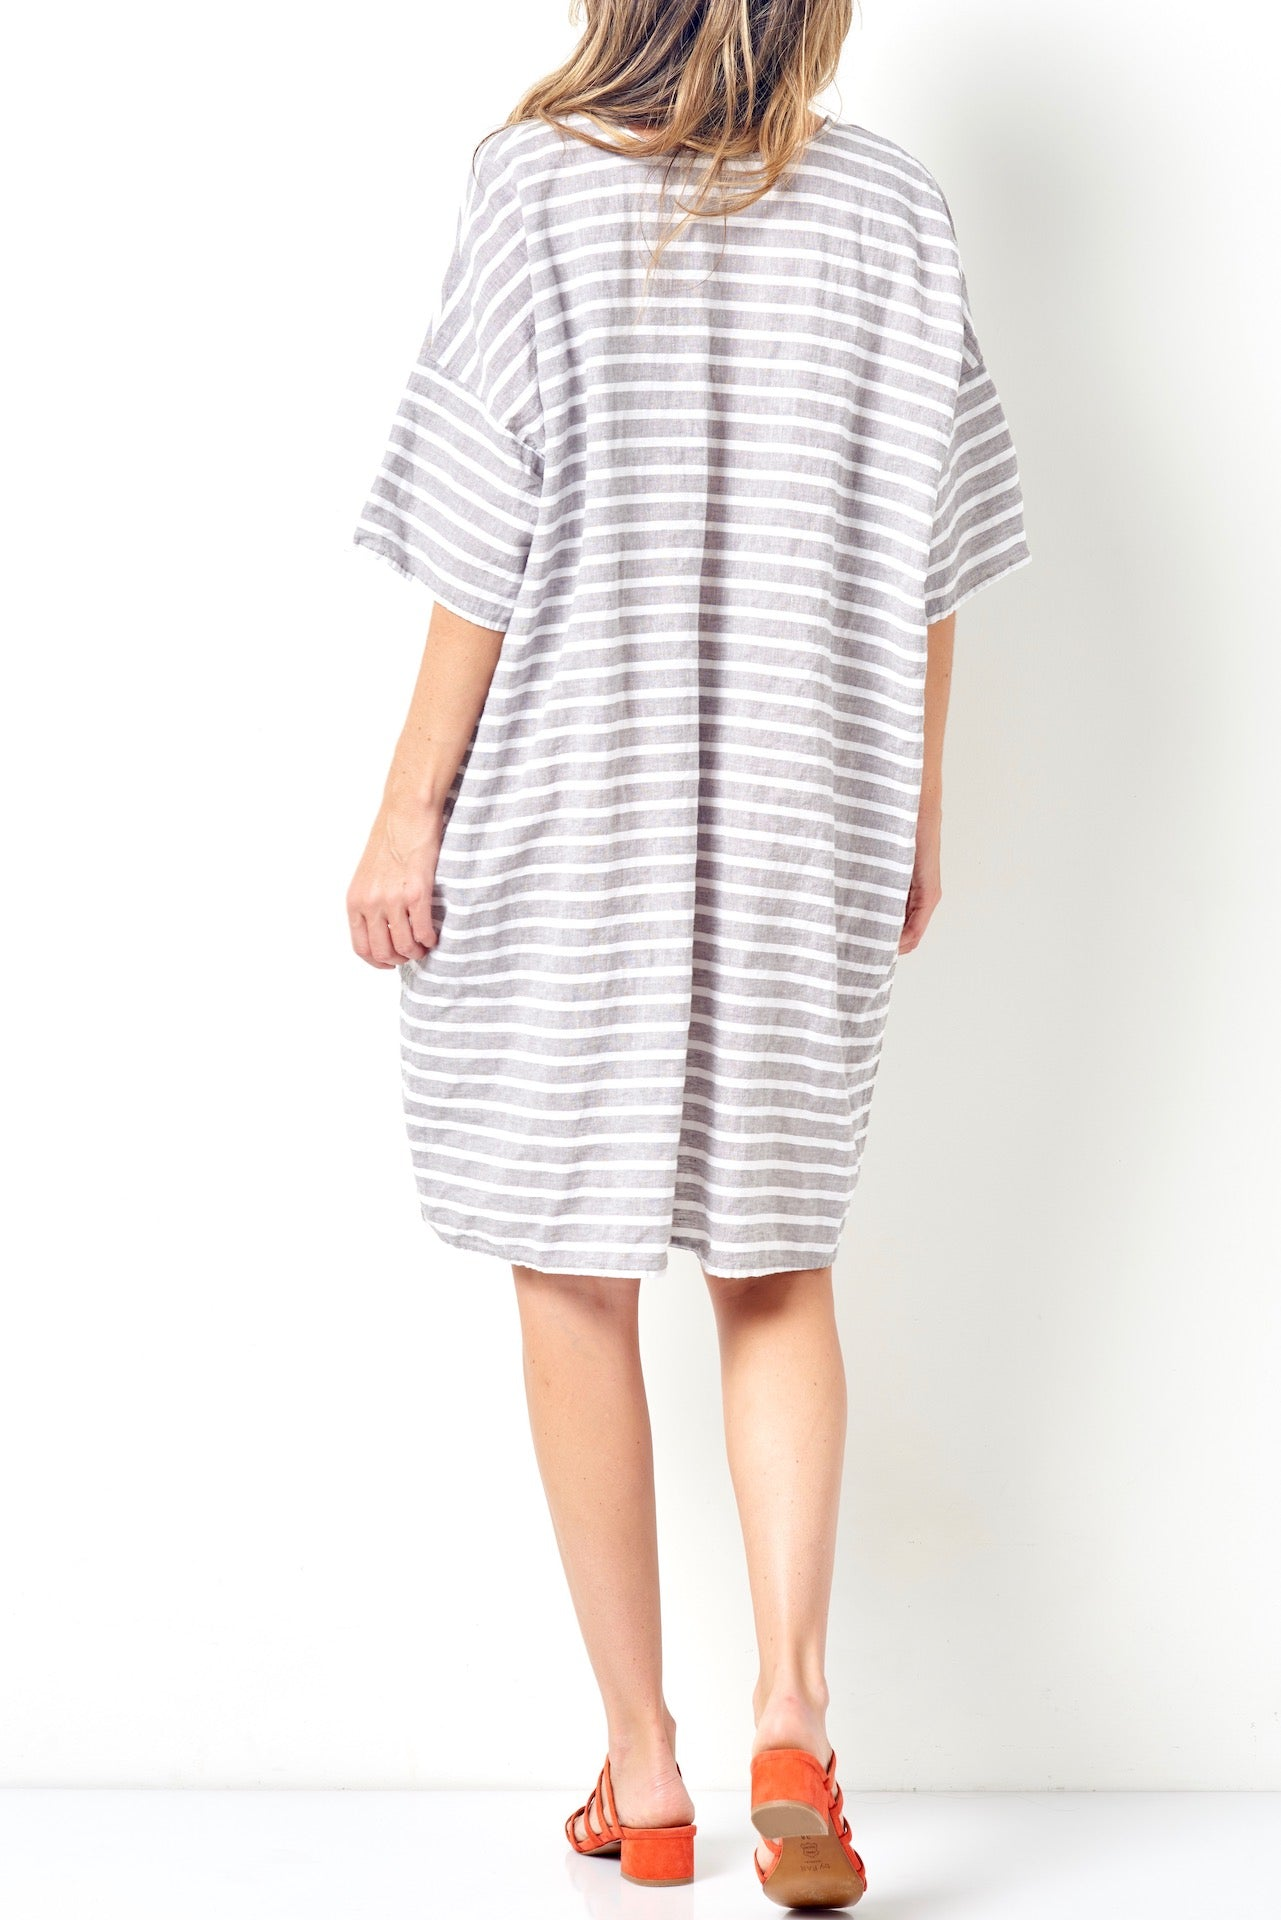 522310a059 SELENA Relaxed Tee Style Dress-Stripe – CLC by Corey Lynn Calter